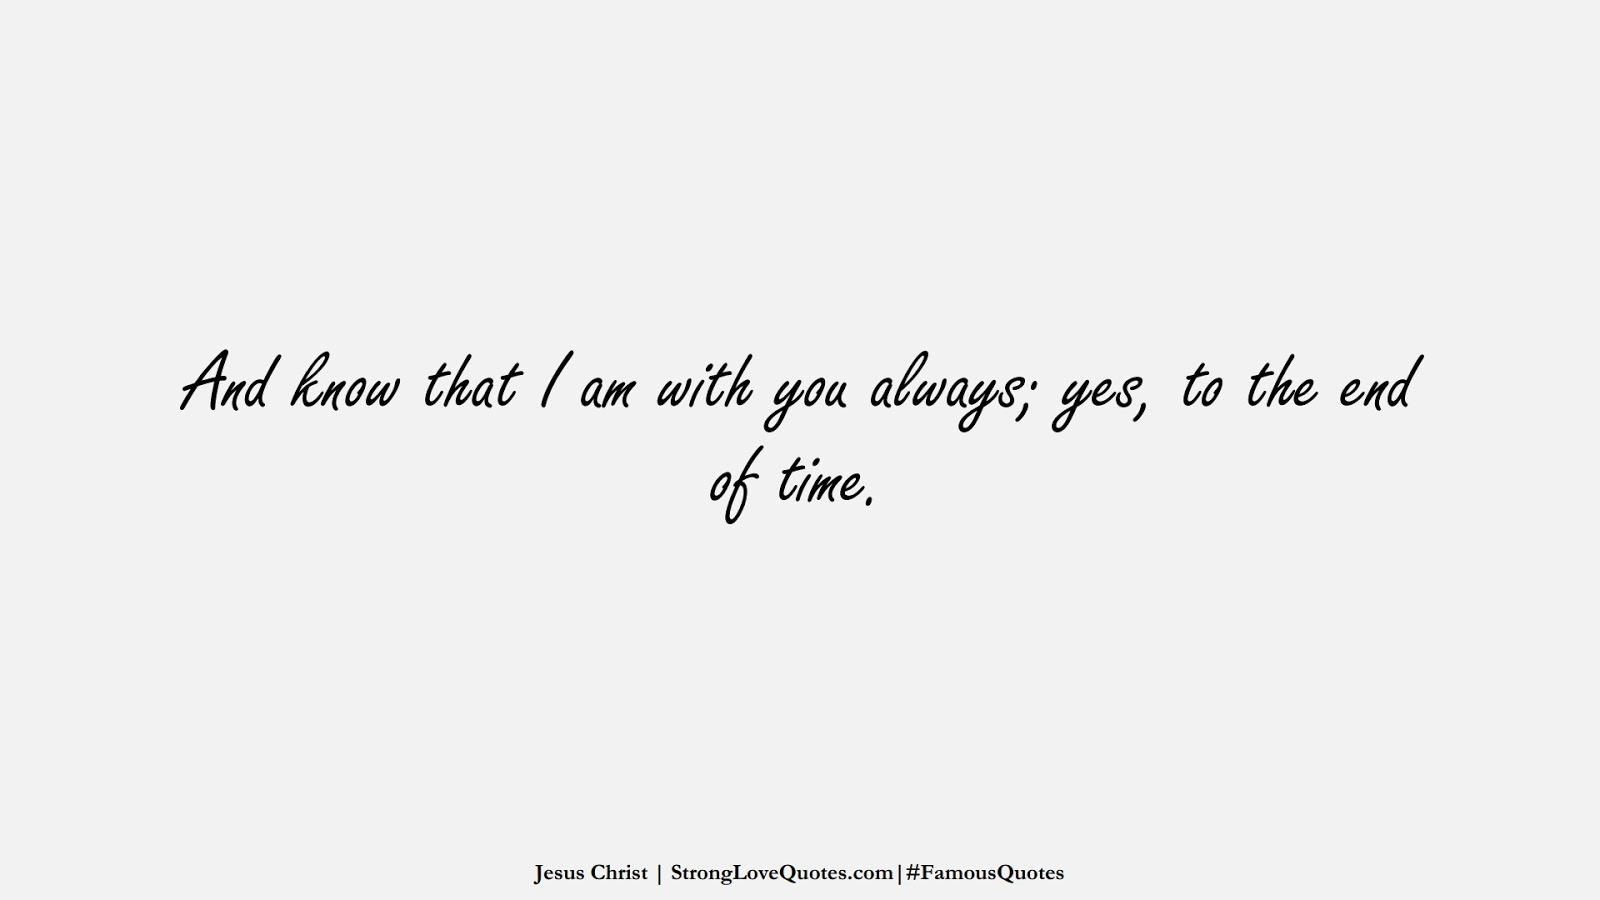 And know that I am with you always; yes, to the end of time. (Jesus Christ);  #FamousQuotes